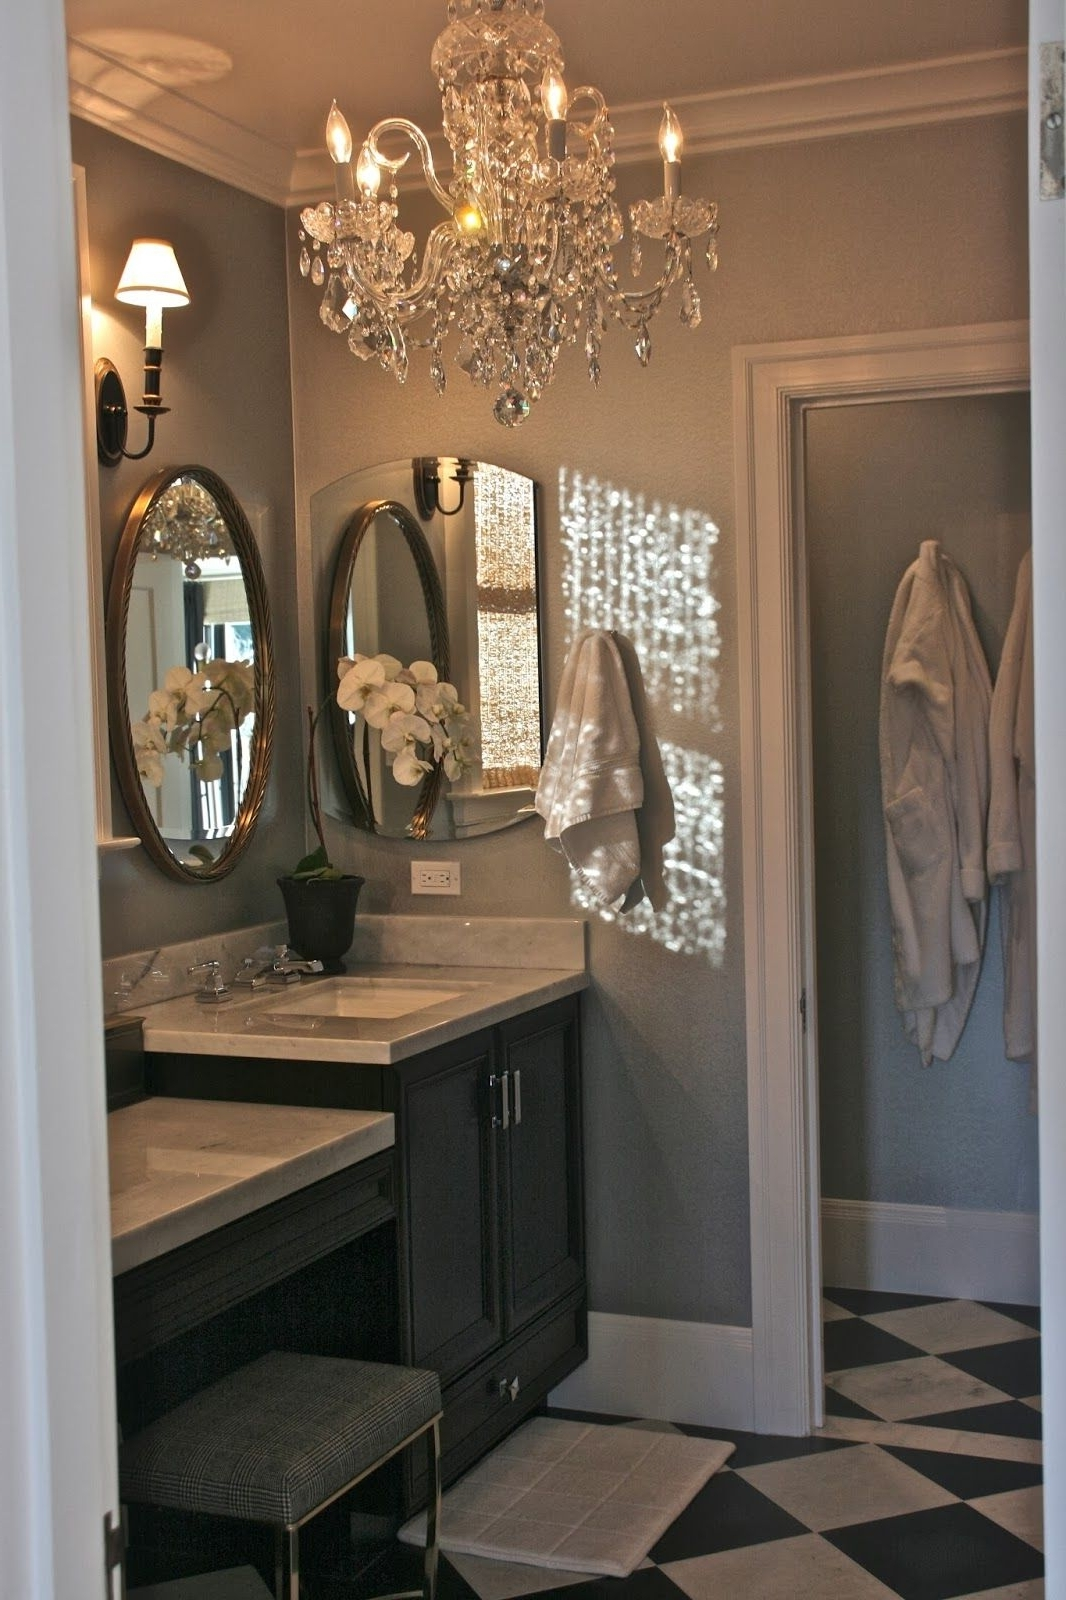 Chandelier Bathroom Ceiling Lights Intended For Popular Elegant Retreat. .  (View 3 of 20)